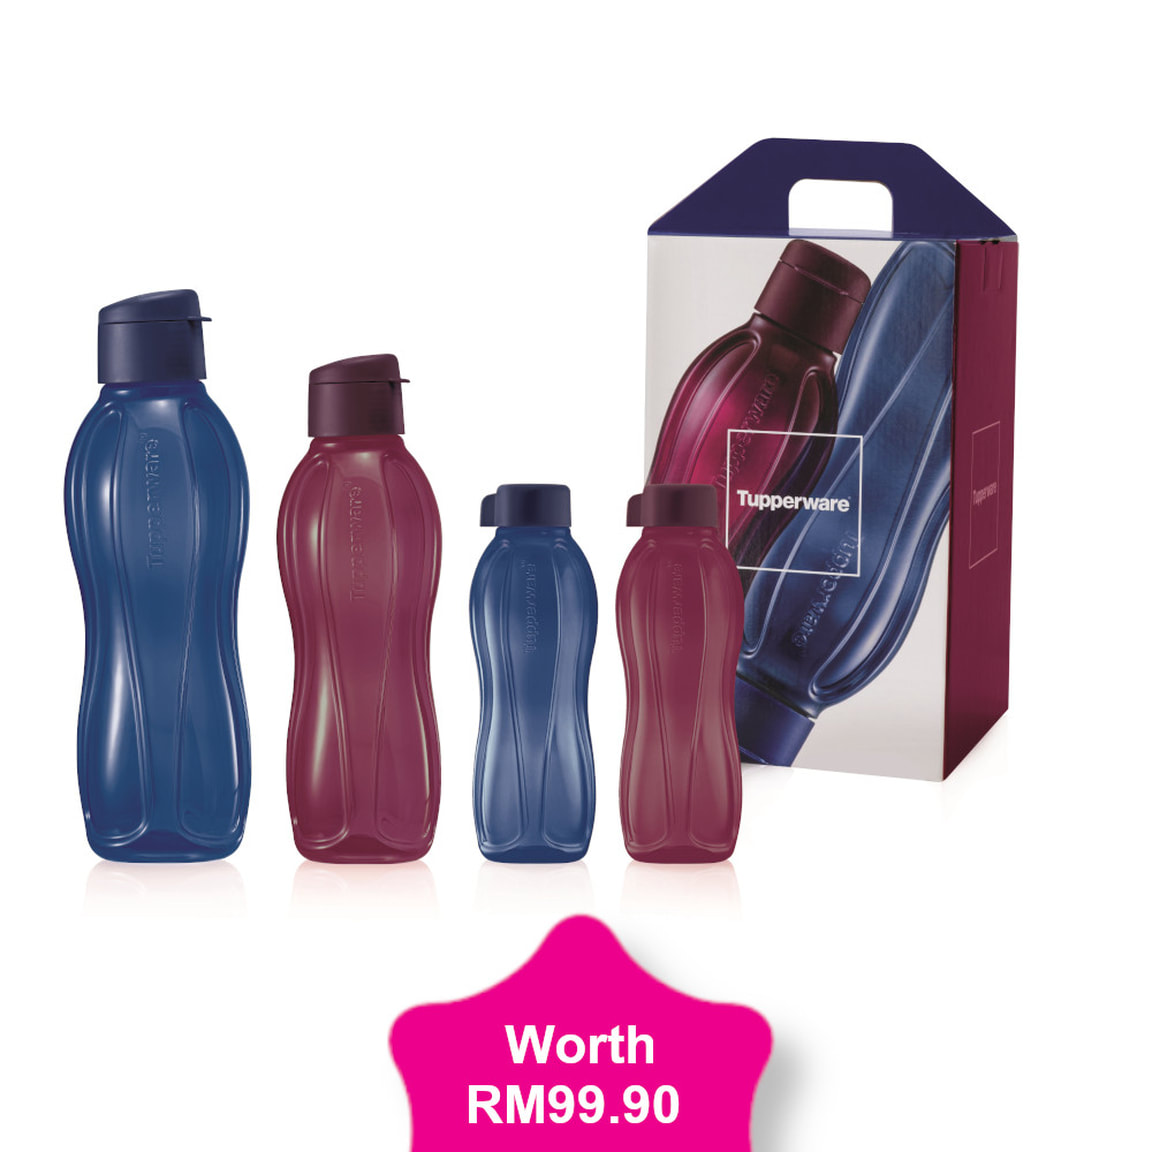 GWP: The Sapphire Eco Collection